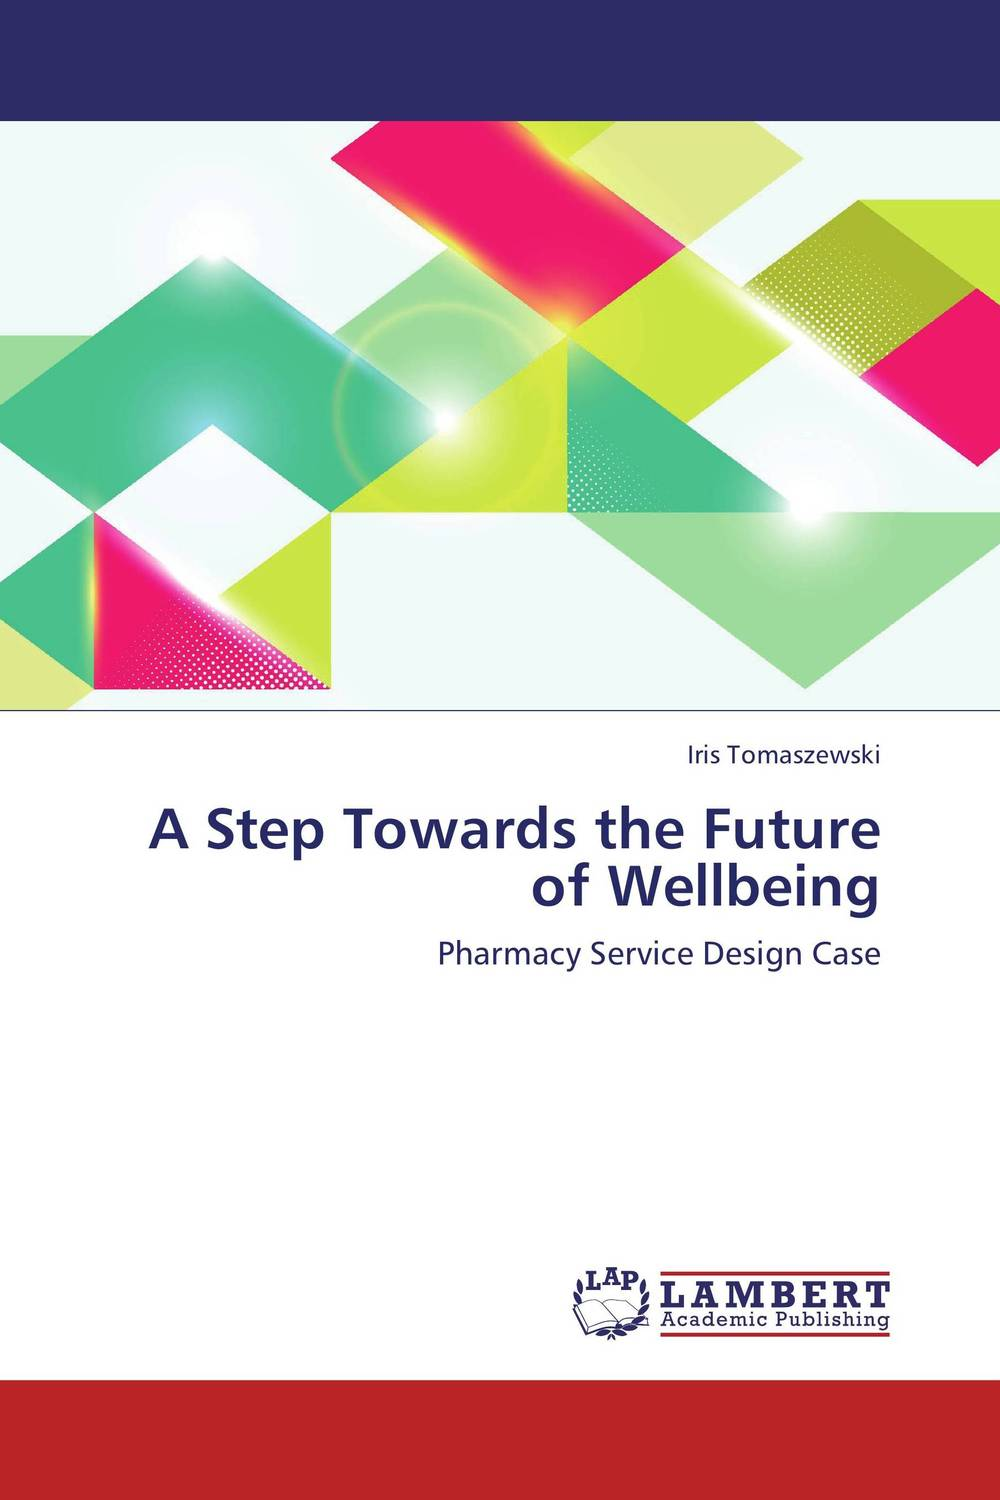 A Step Towards the Future of Wellbeing